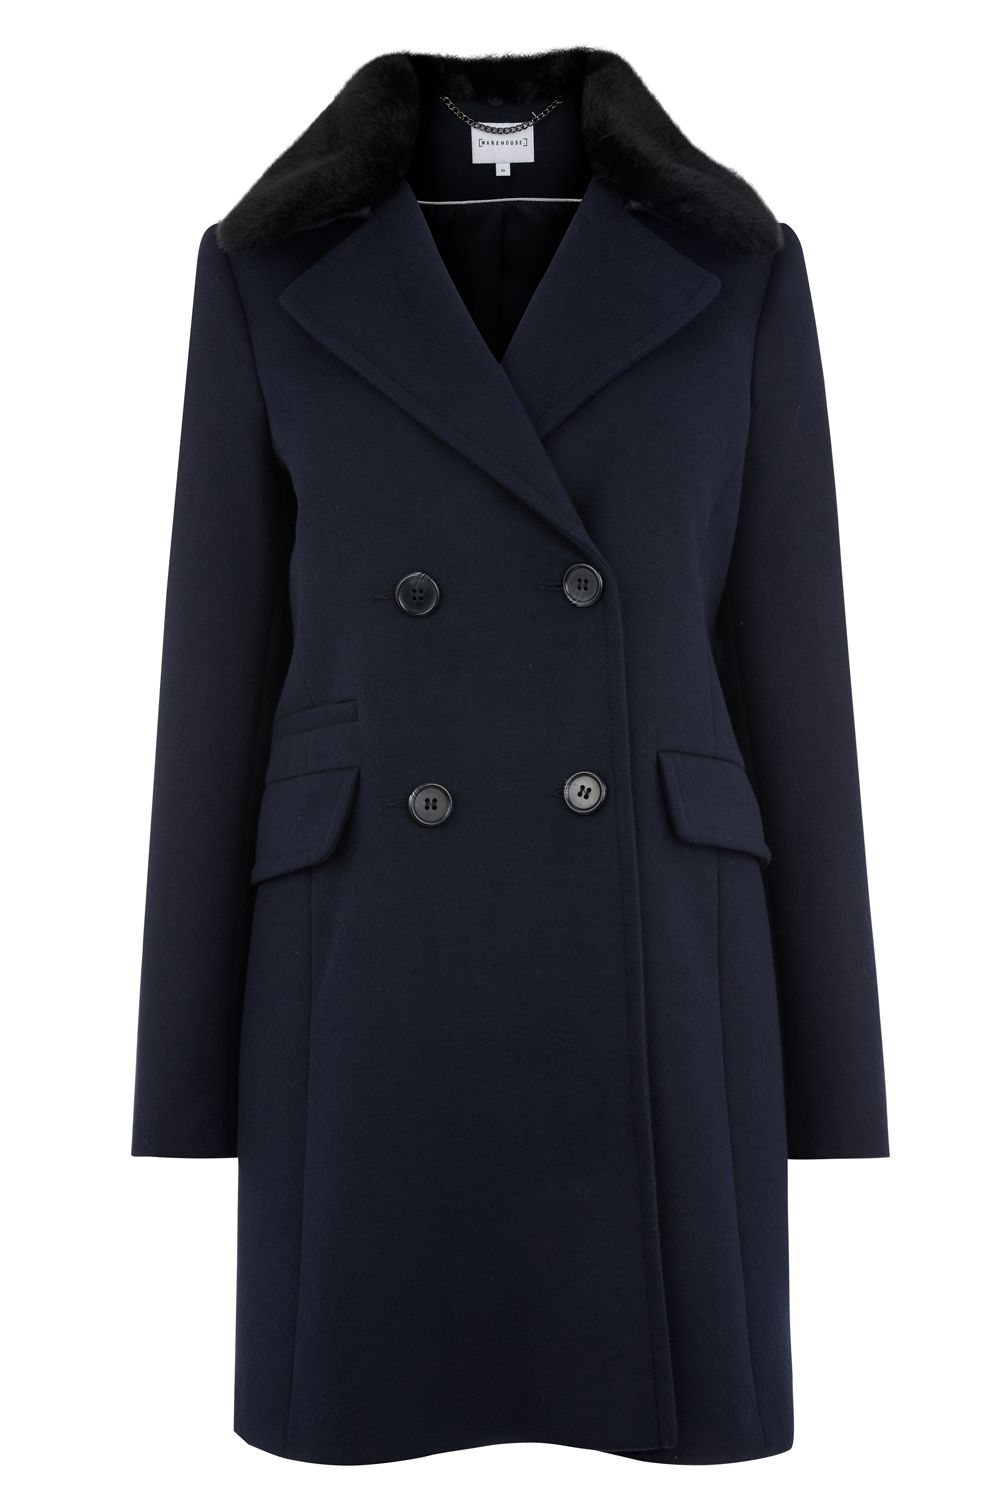 Warehouse Double Breasted Faux Fur Coat, Blue